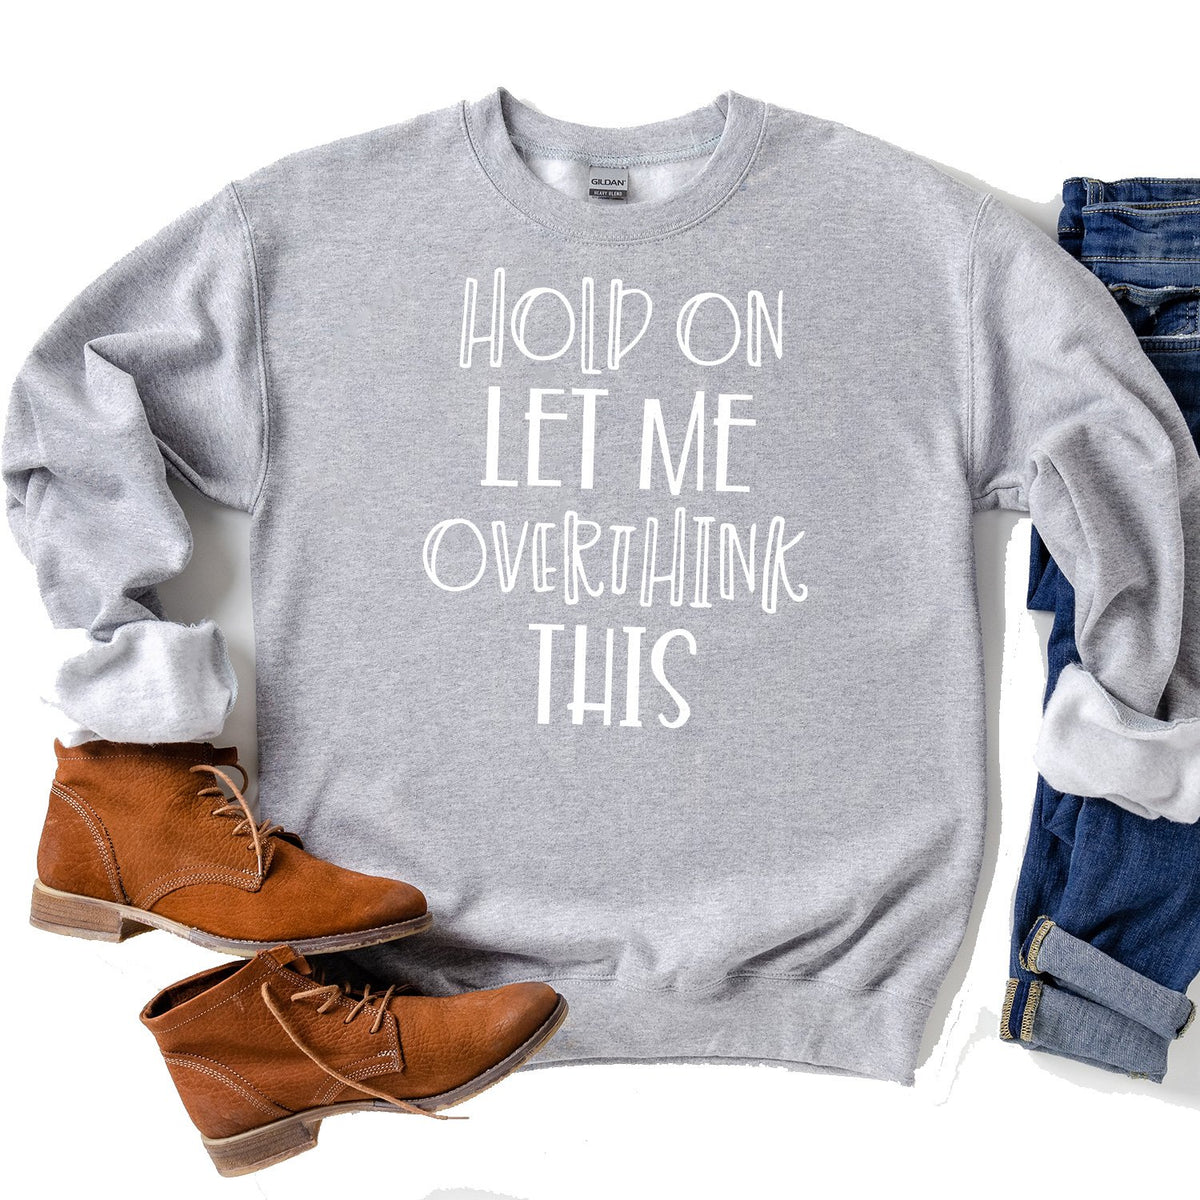 Hold On Let Me Overthink This - Long Sleeve Heavy Crewneck Sweatshirt